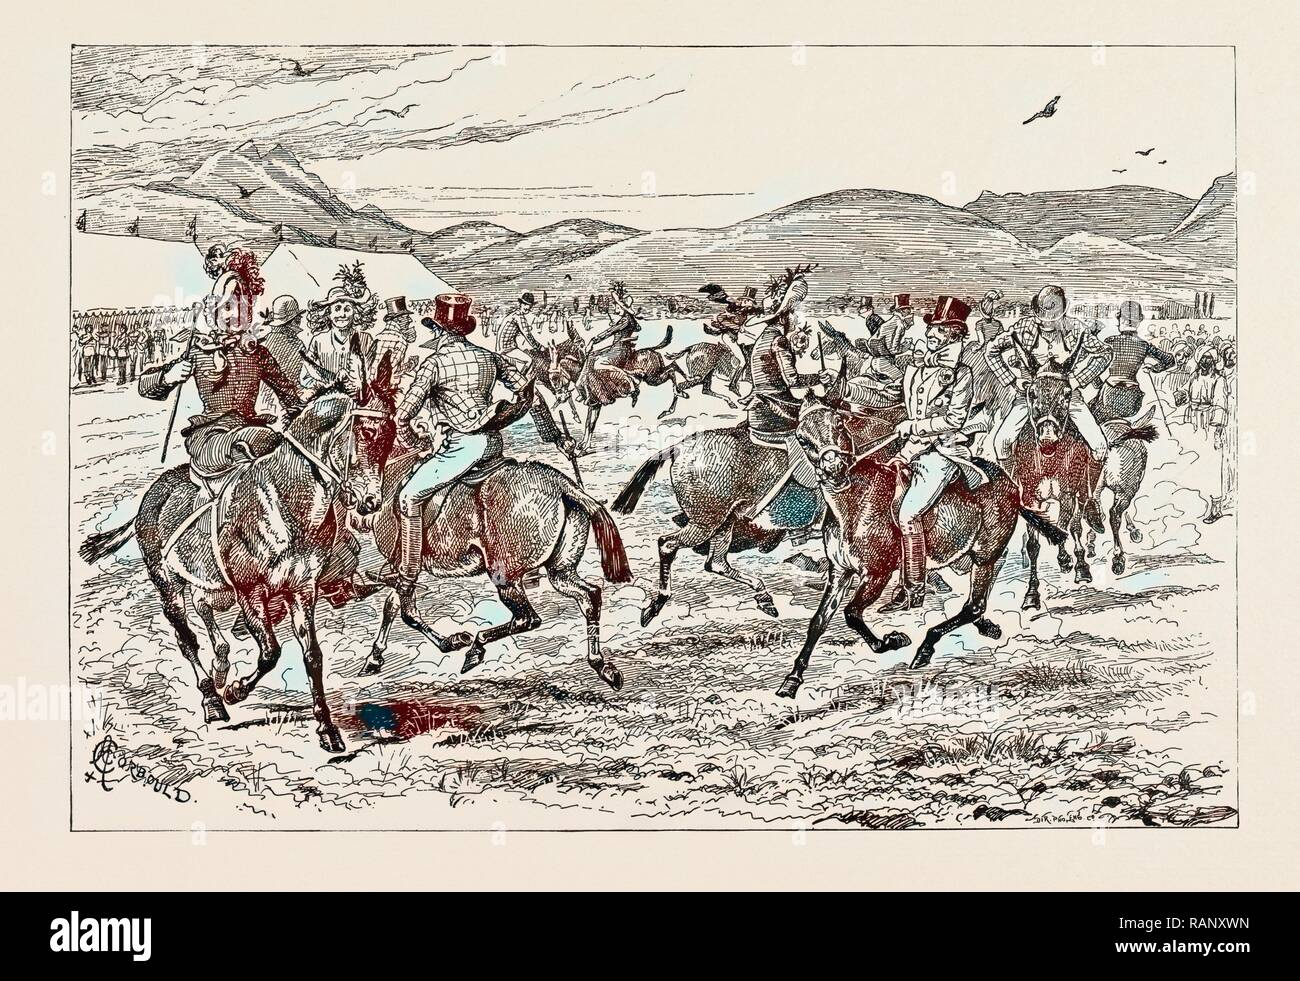 A SET OF LANCERS ON MULE-BACK IN BELUCHISTAN, INDIA 1889. Reimagined by Gibon. Classic art with a modern twist reimagined - Stock Image